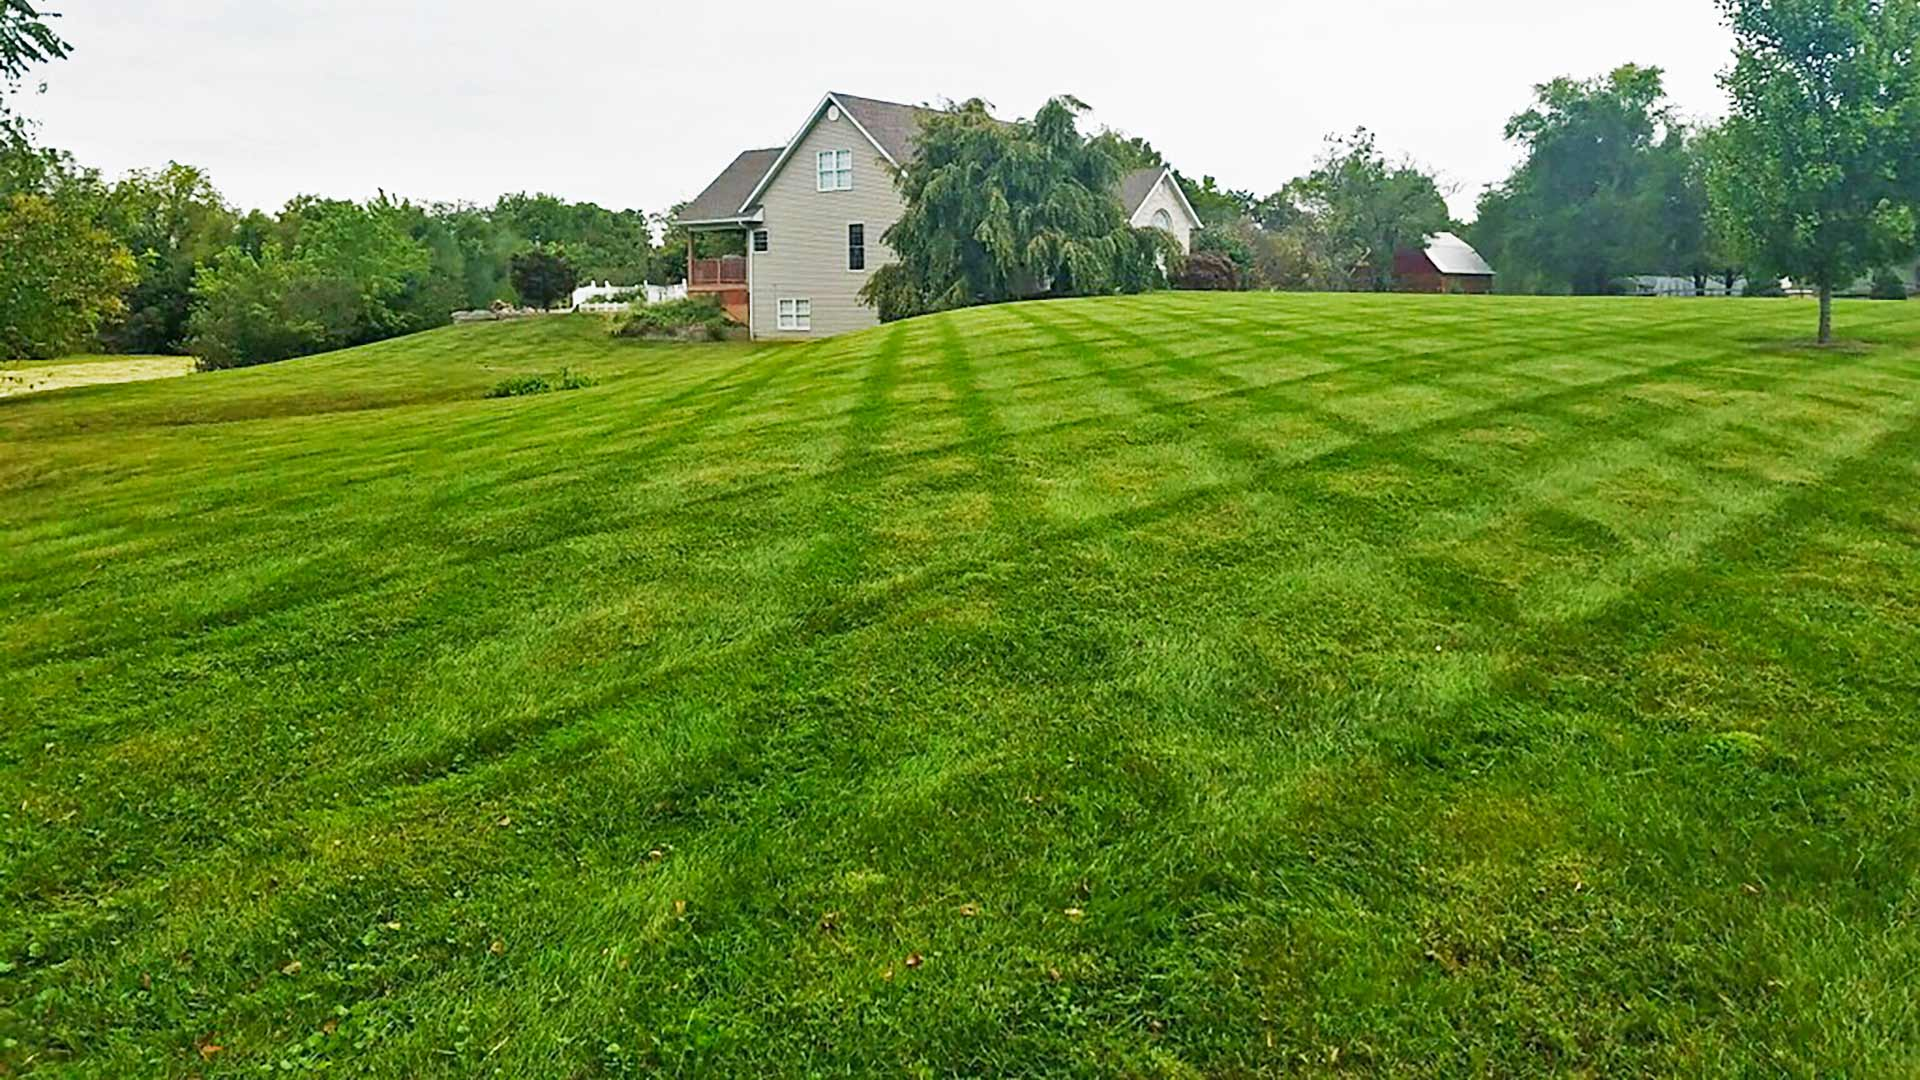 Fertilized lawn in Edwardsville, IL.